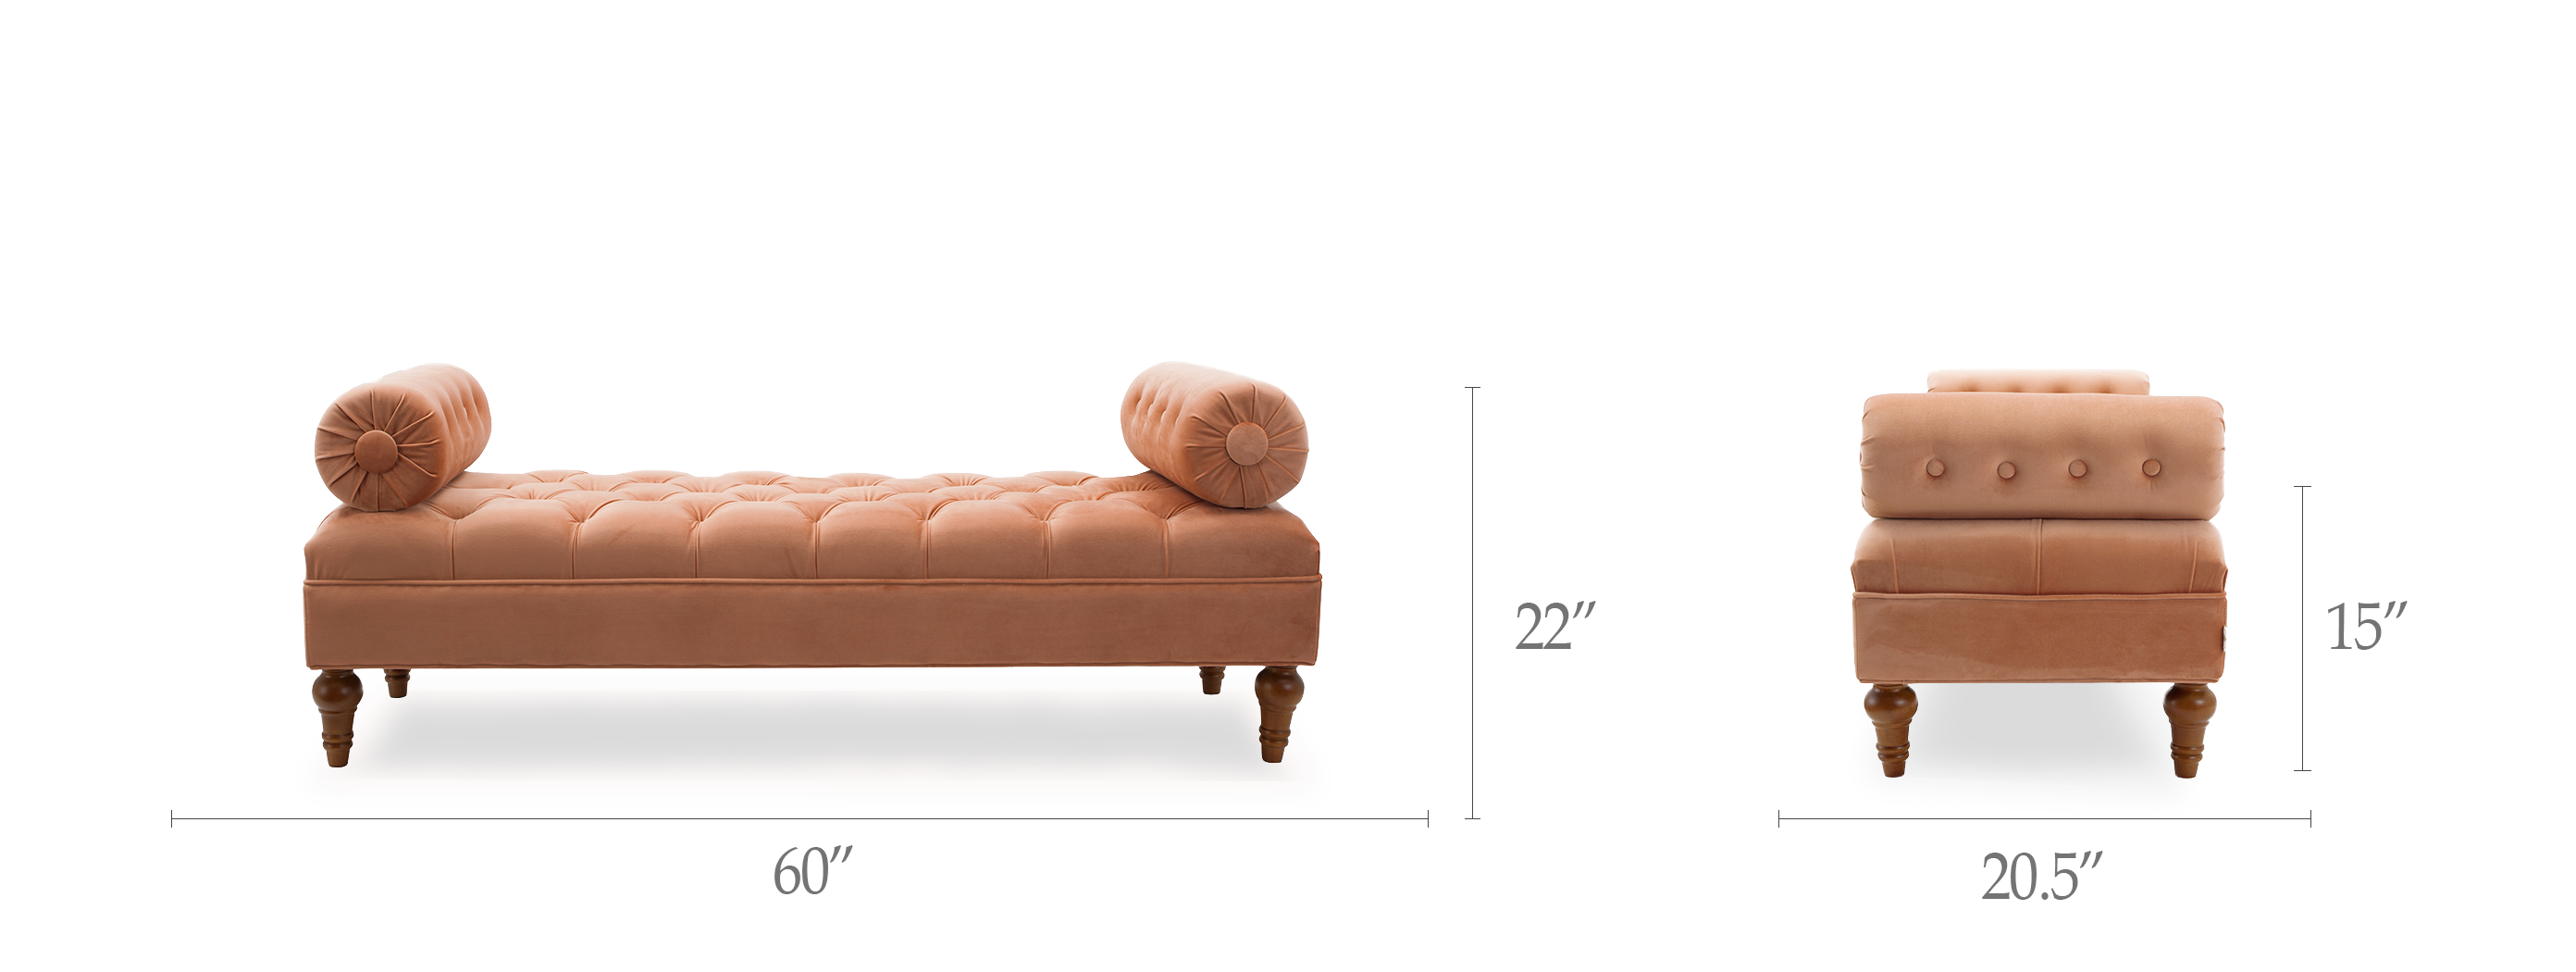 Lewis Bolstere Lounge Entryway Bench